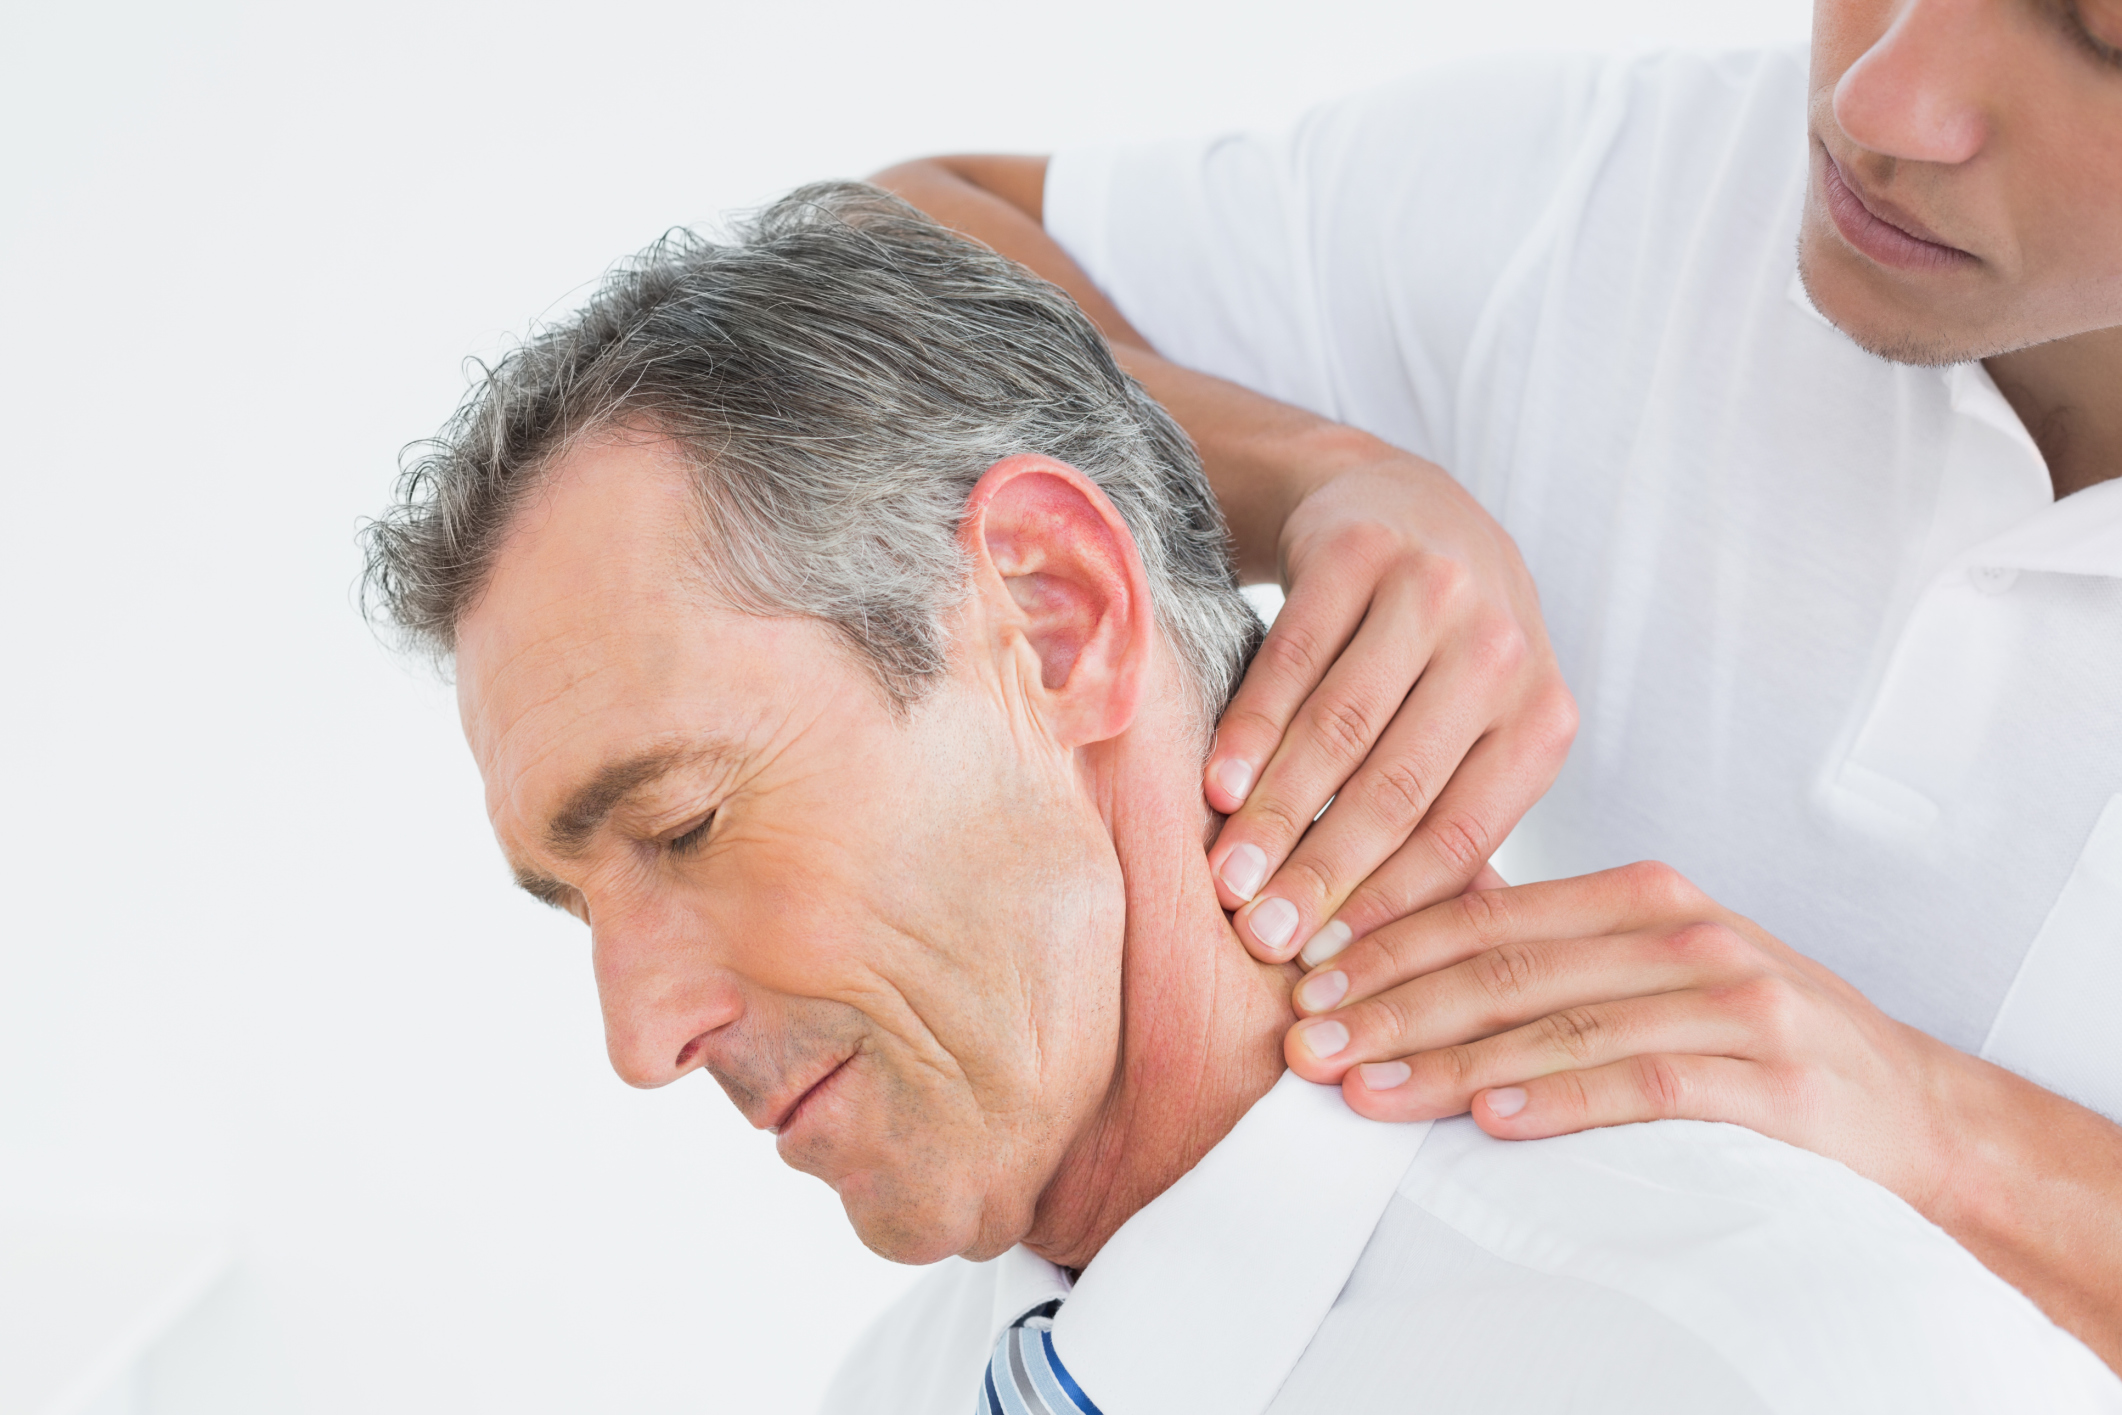 Client with whiplash injuries